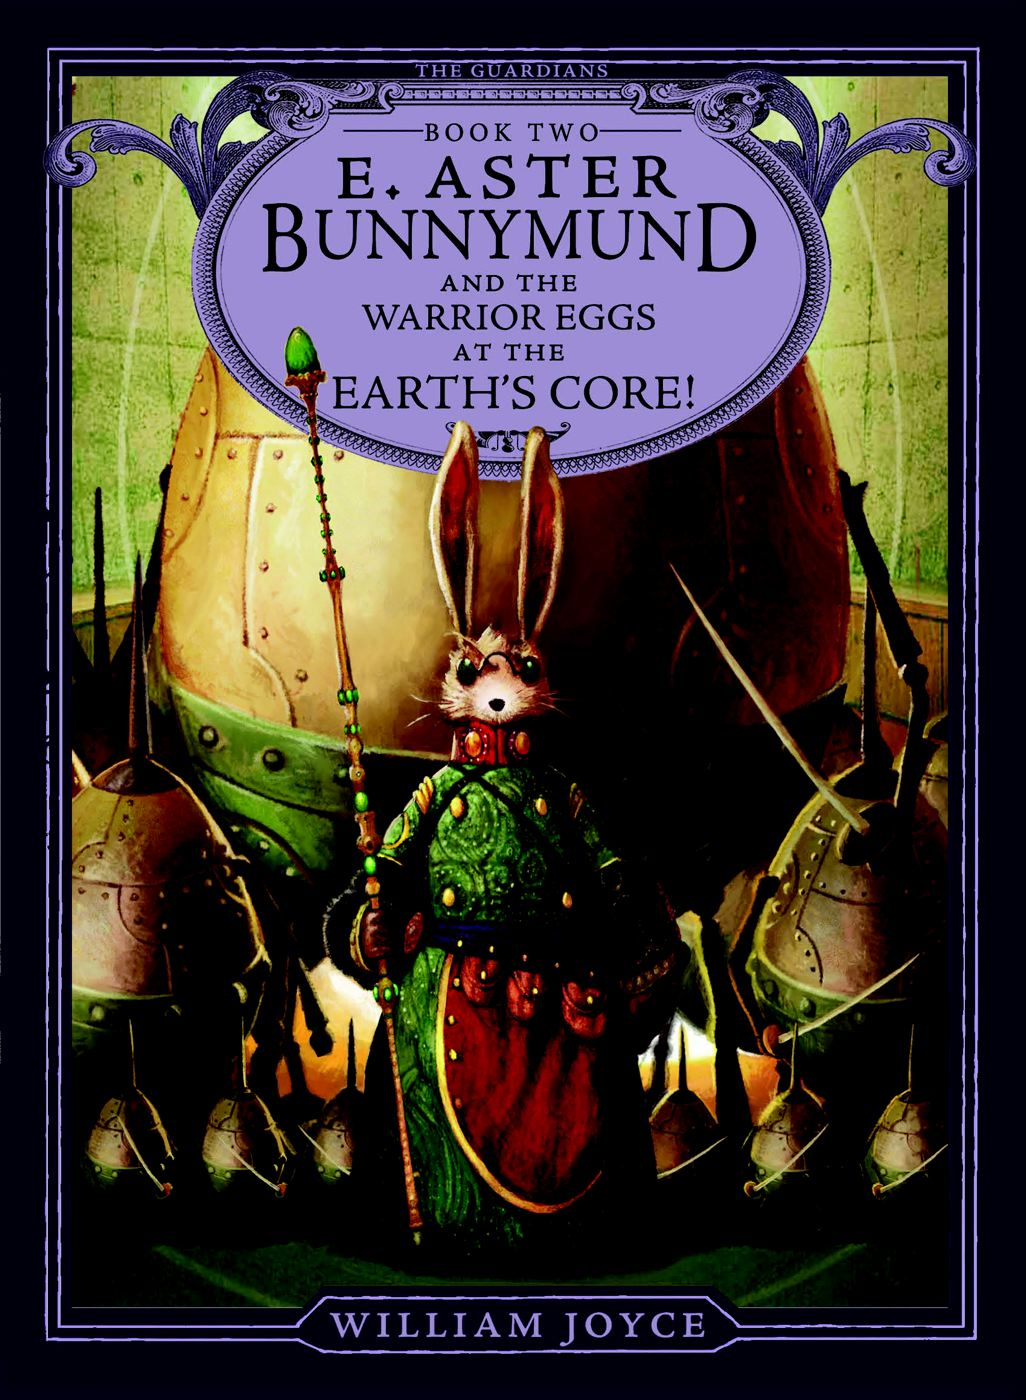 E. Aster Bunnymund and the Warrior Eggs at the Earth's Core! By: William Joyce